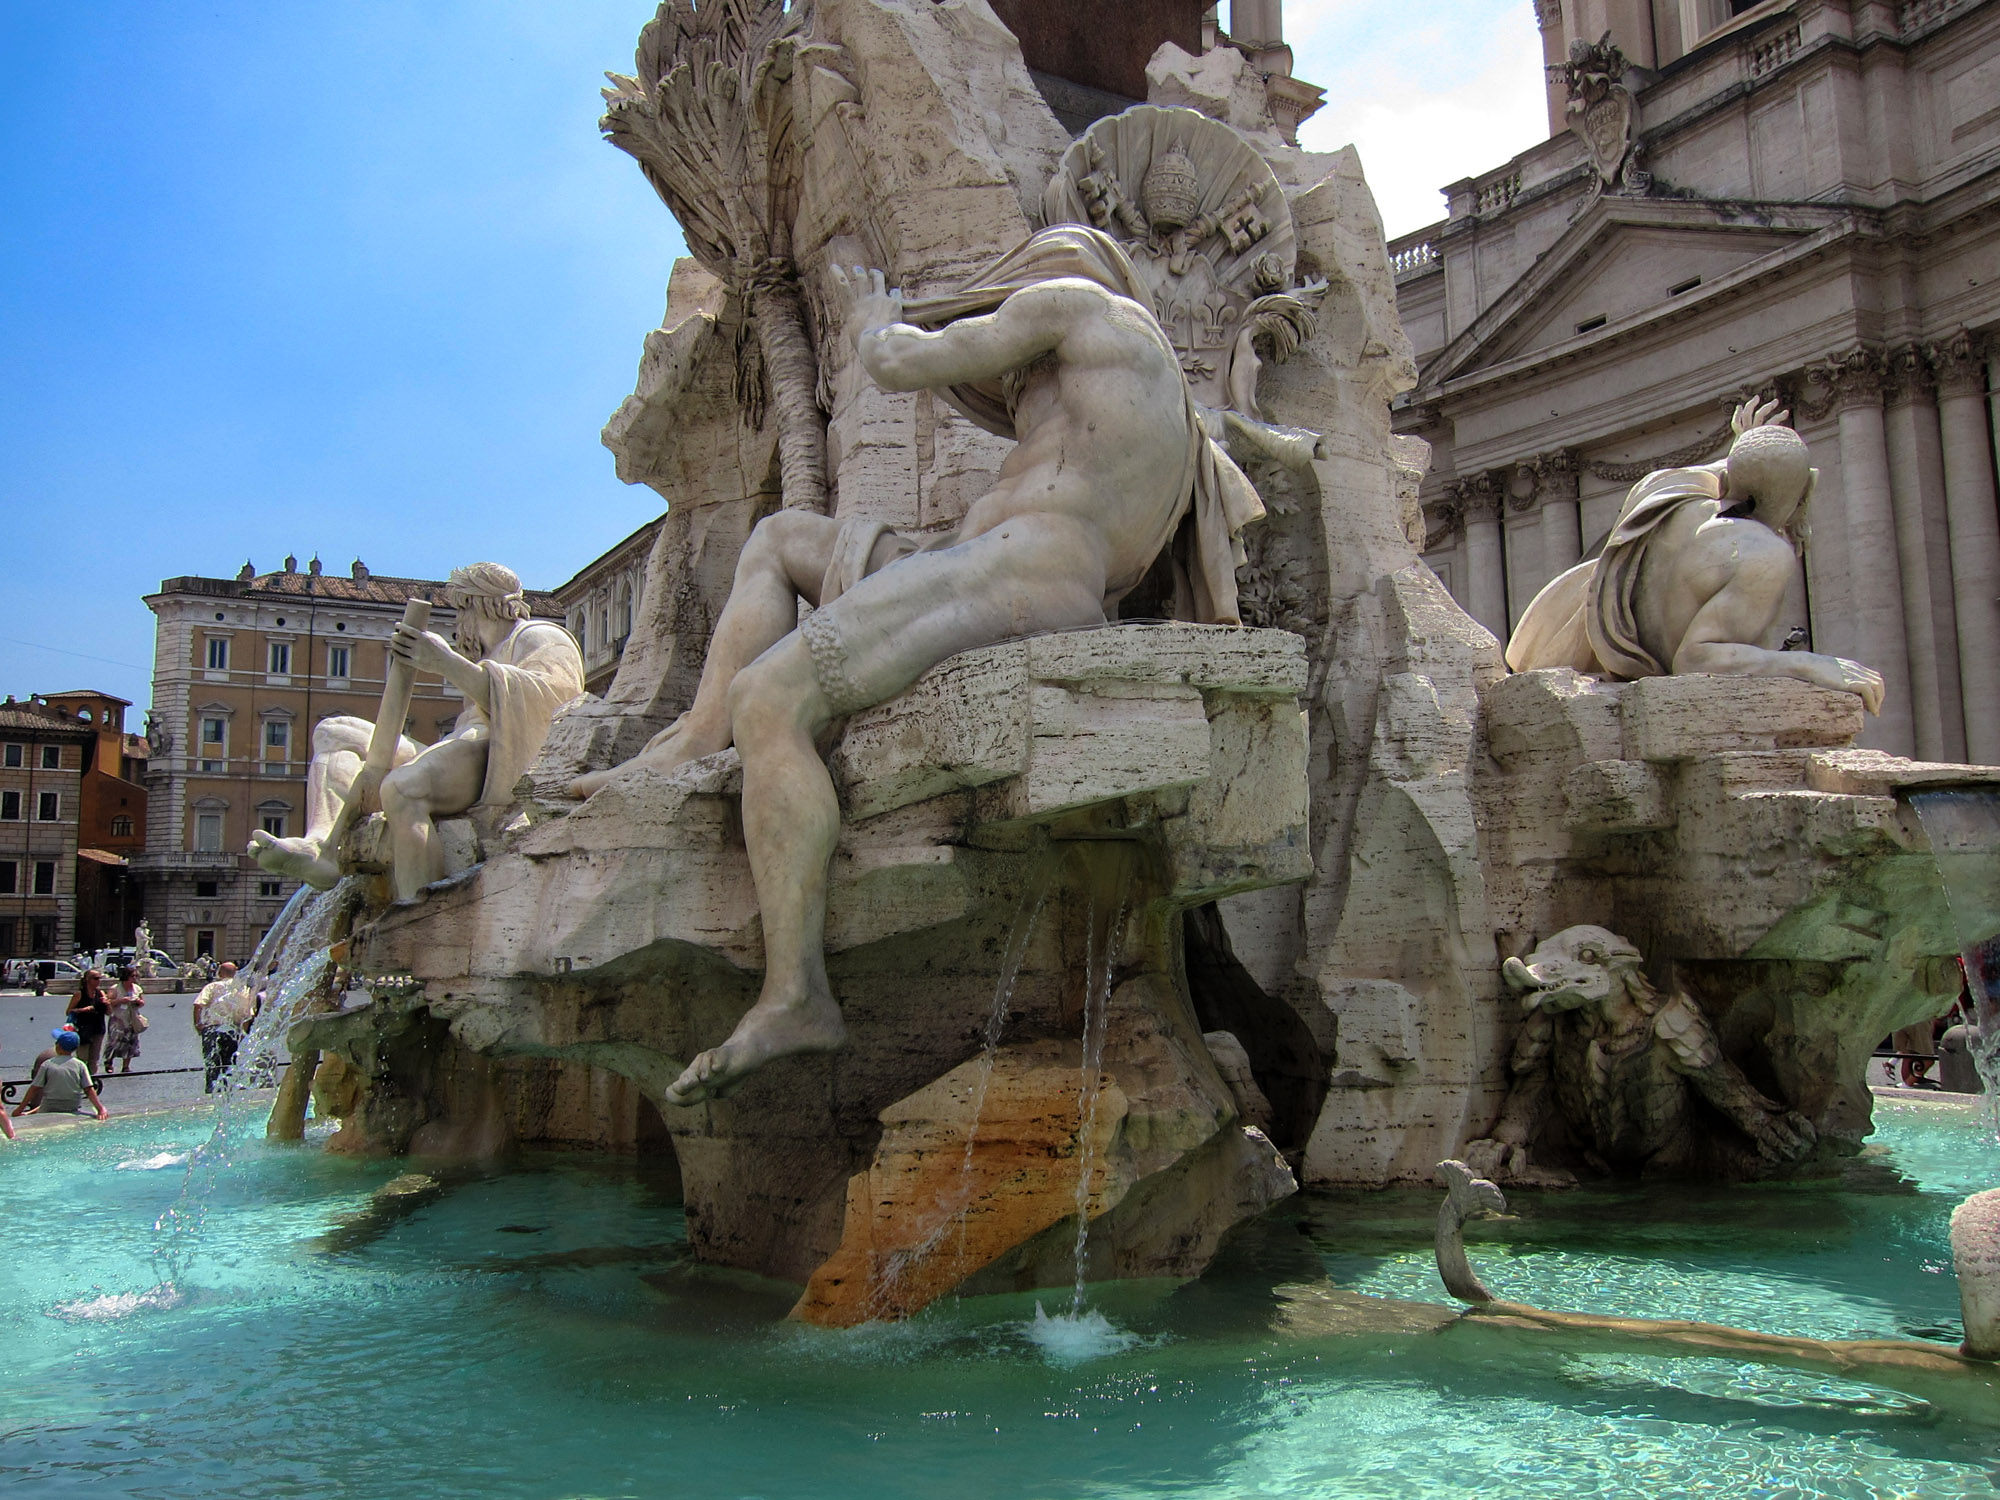 Bernini's Fountain of Four Rivers, Piazza Navona, Rome